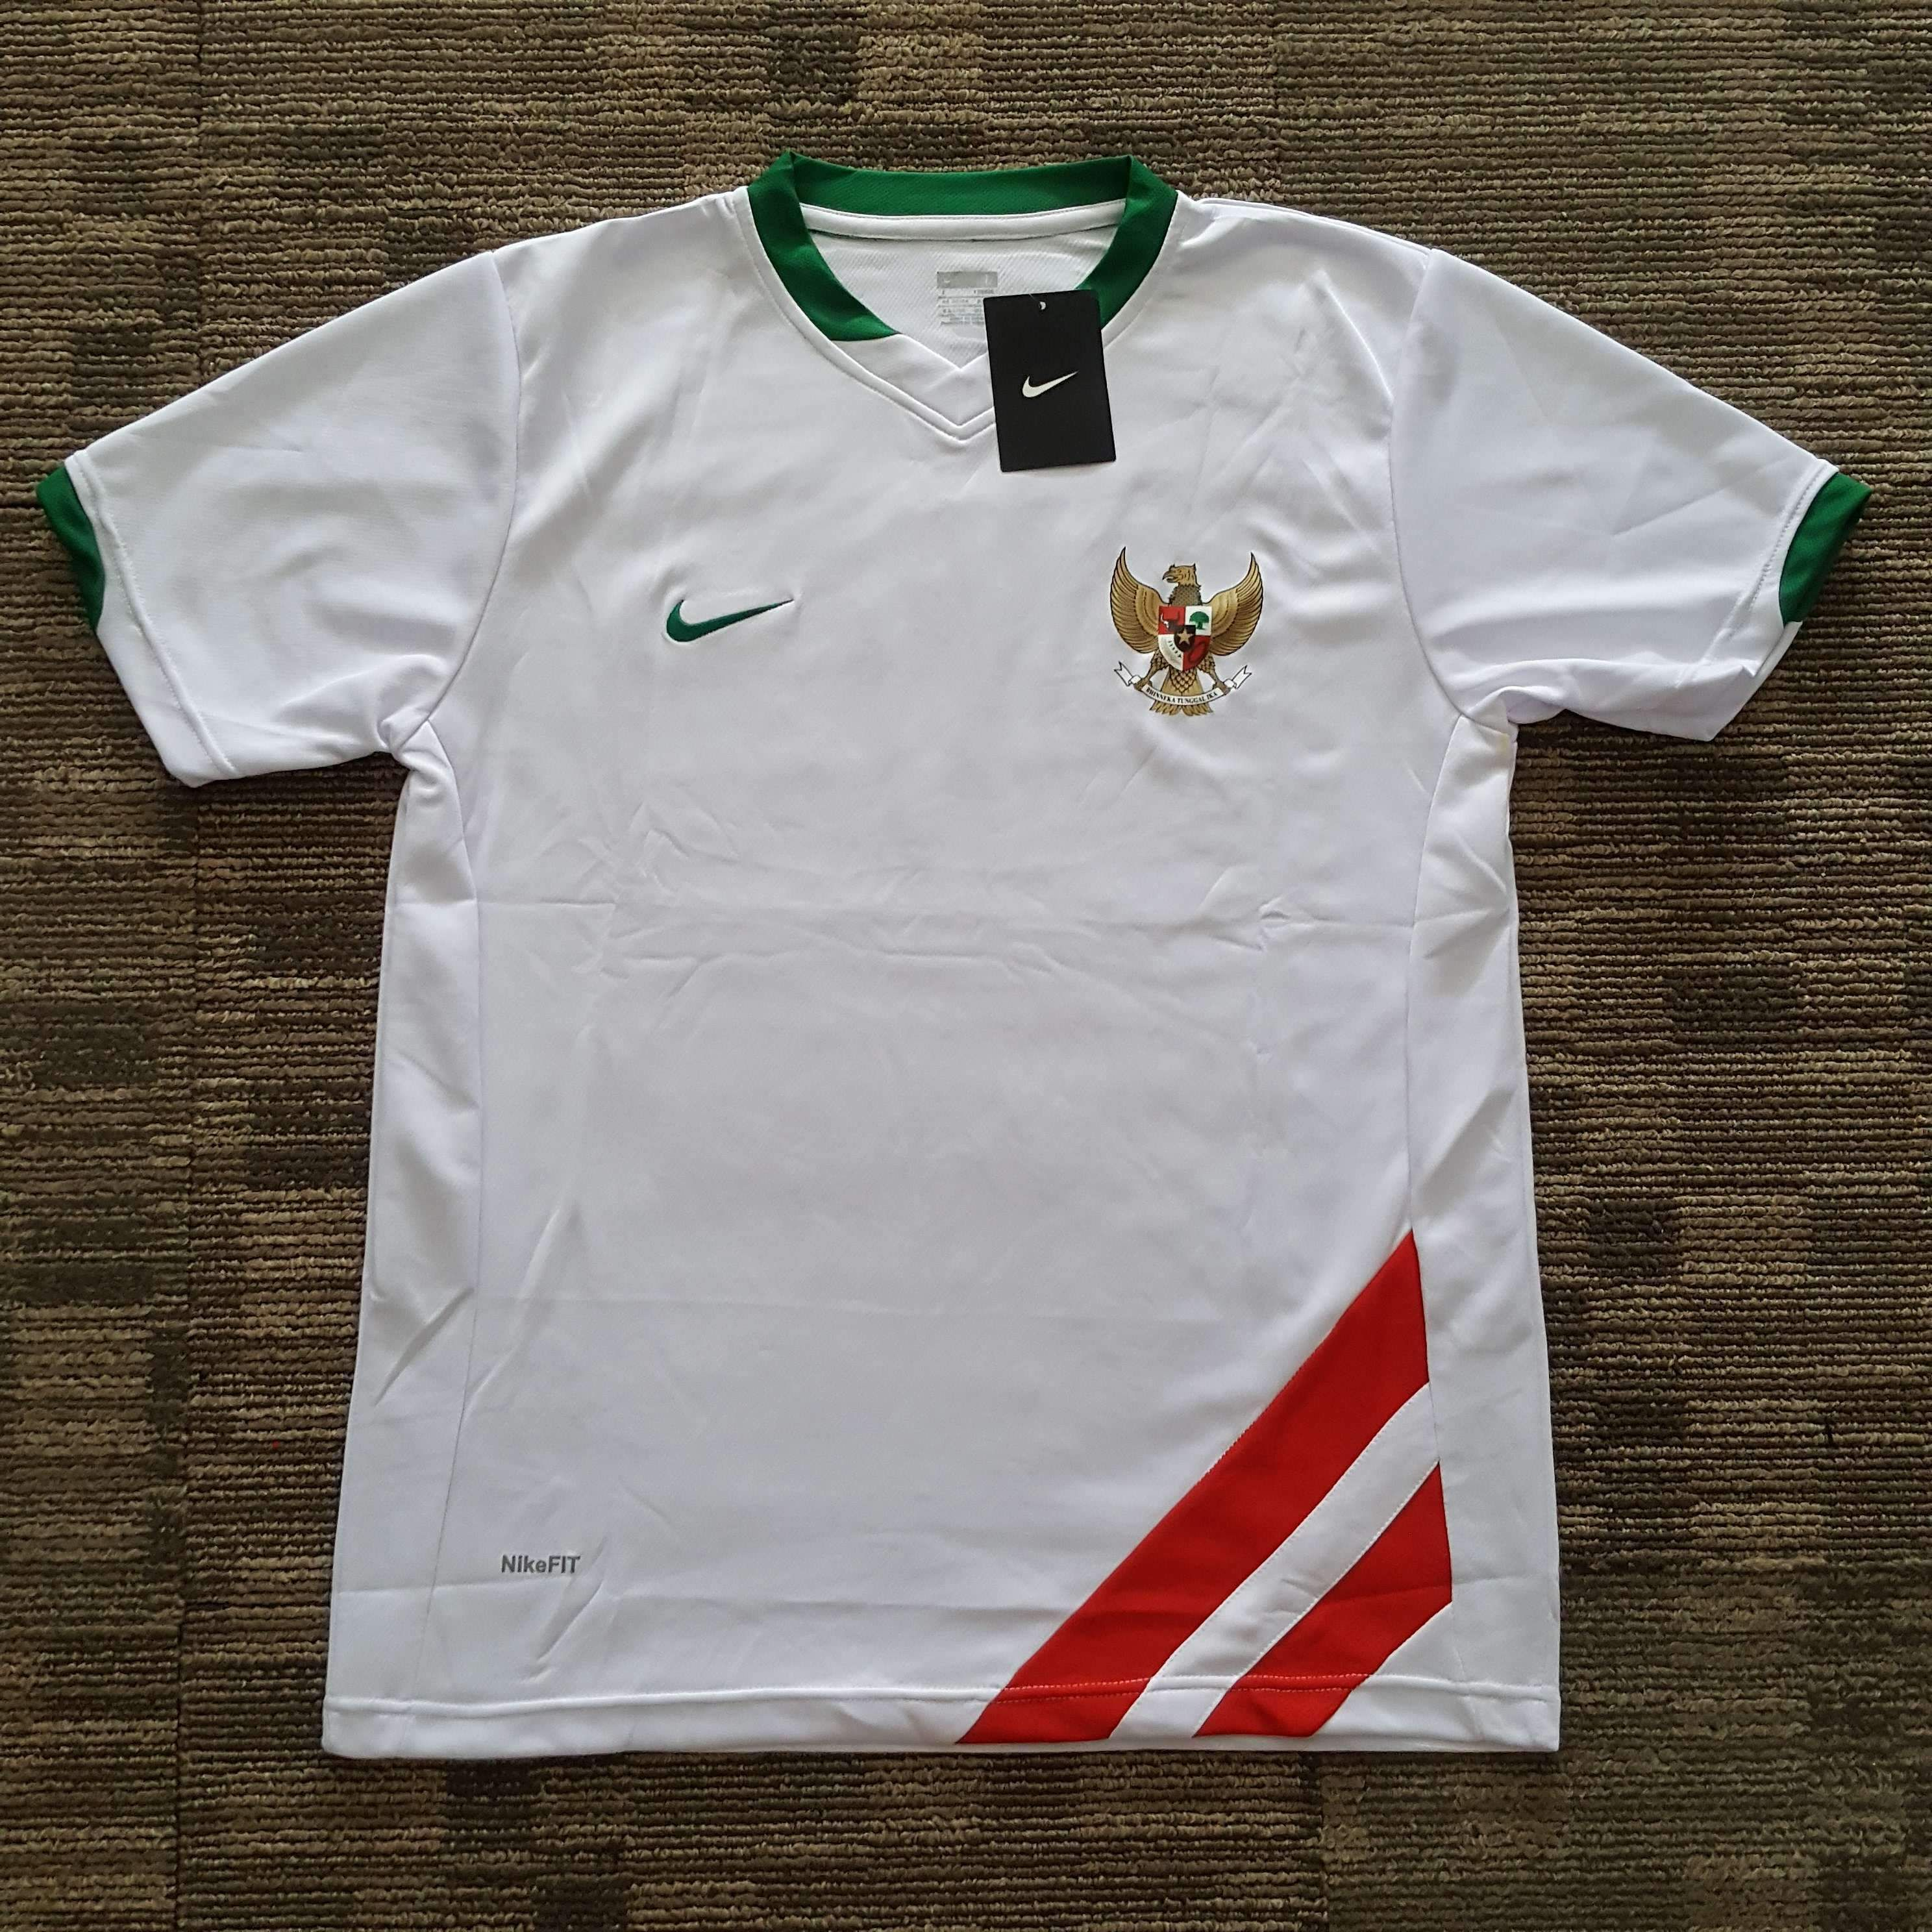 2007 Indonesia Away Shirt in 2020 Vintage football